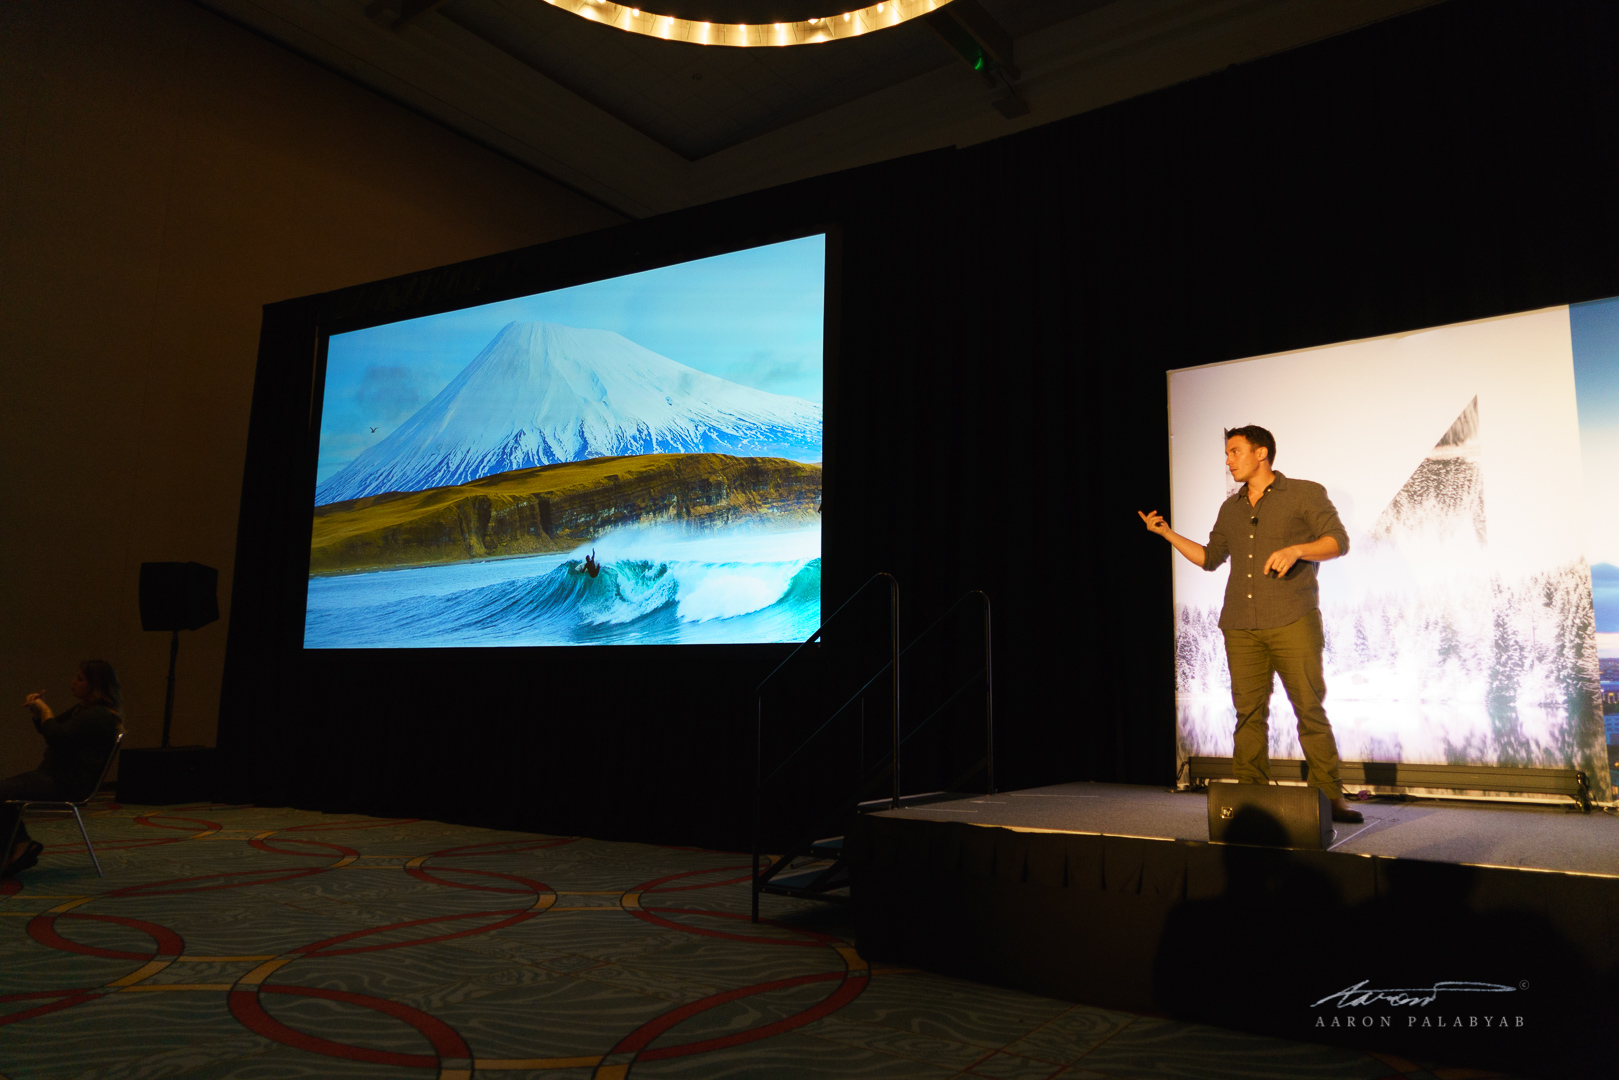 Chris Burkard discussing what went into shooting one of his most iconic images